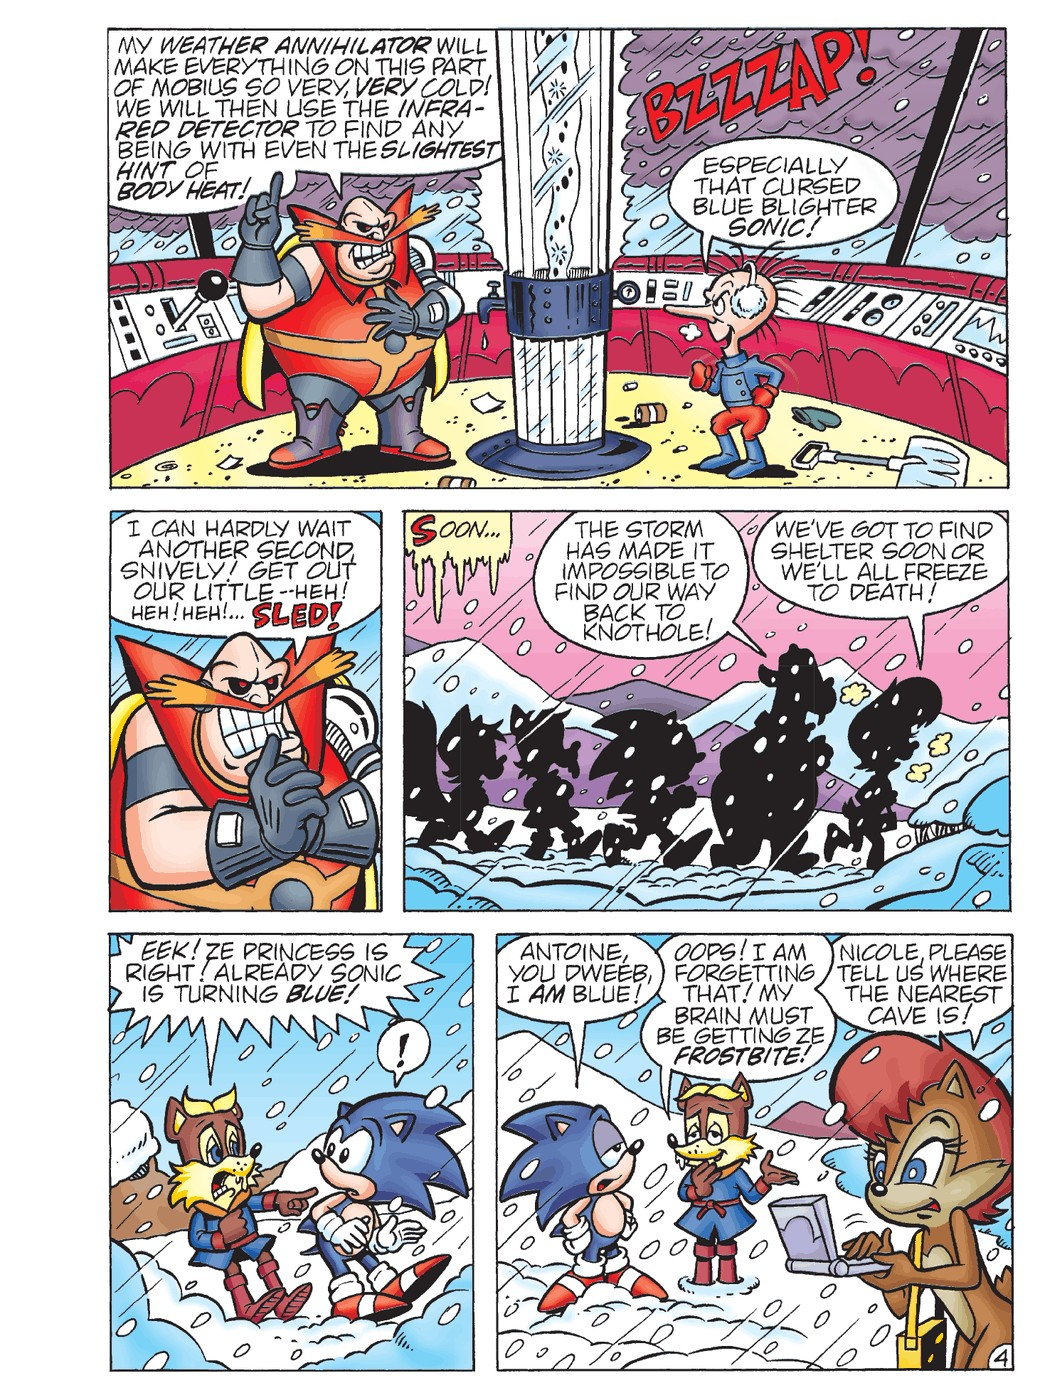 Sonic Super Digest #5 - Read Sonic Super Digest Issue #5